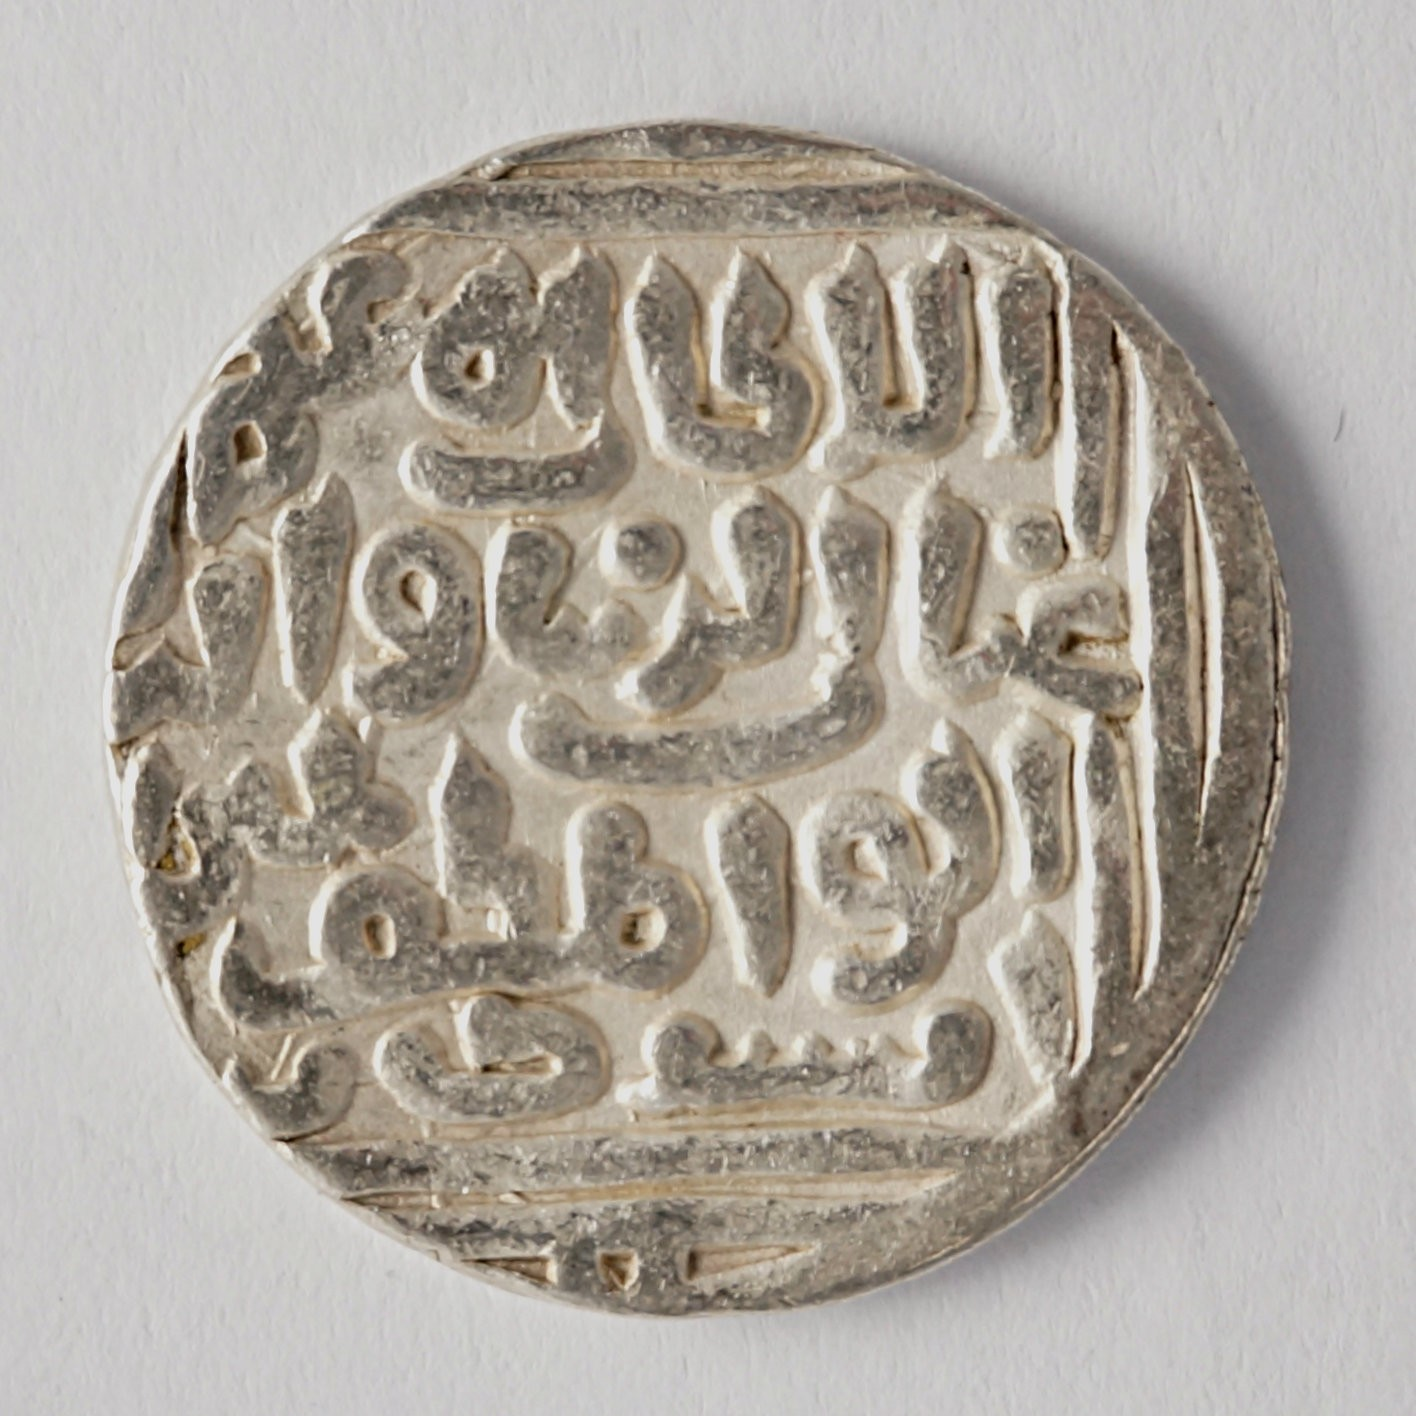 India, tankah from 1269 AD (AH 668)